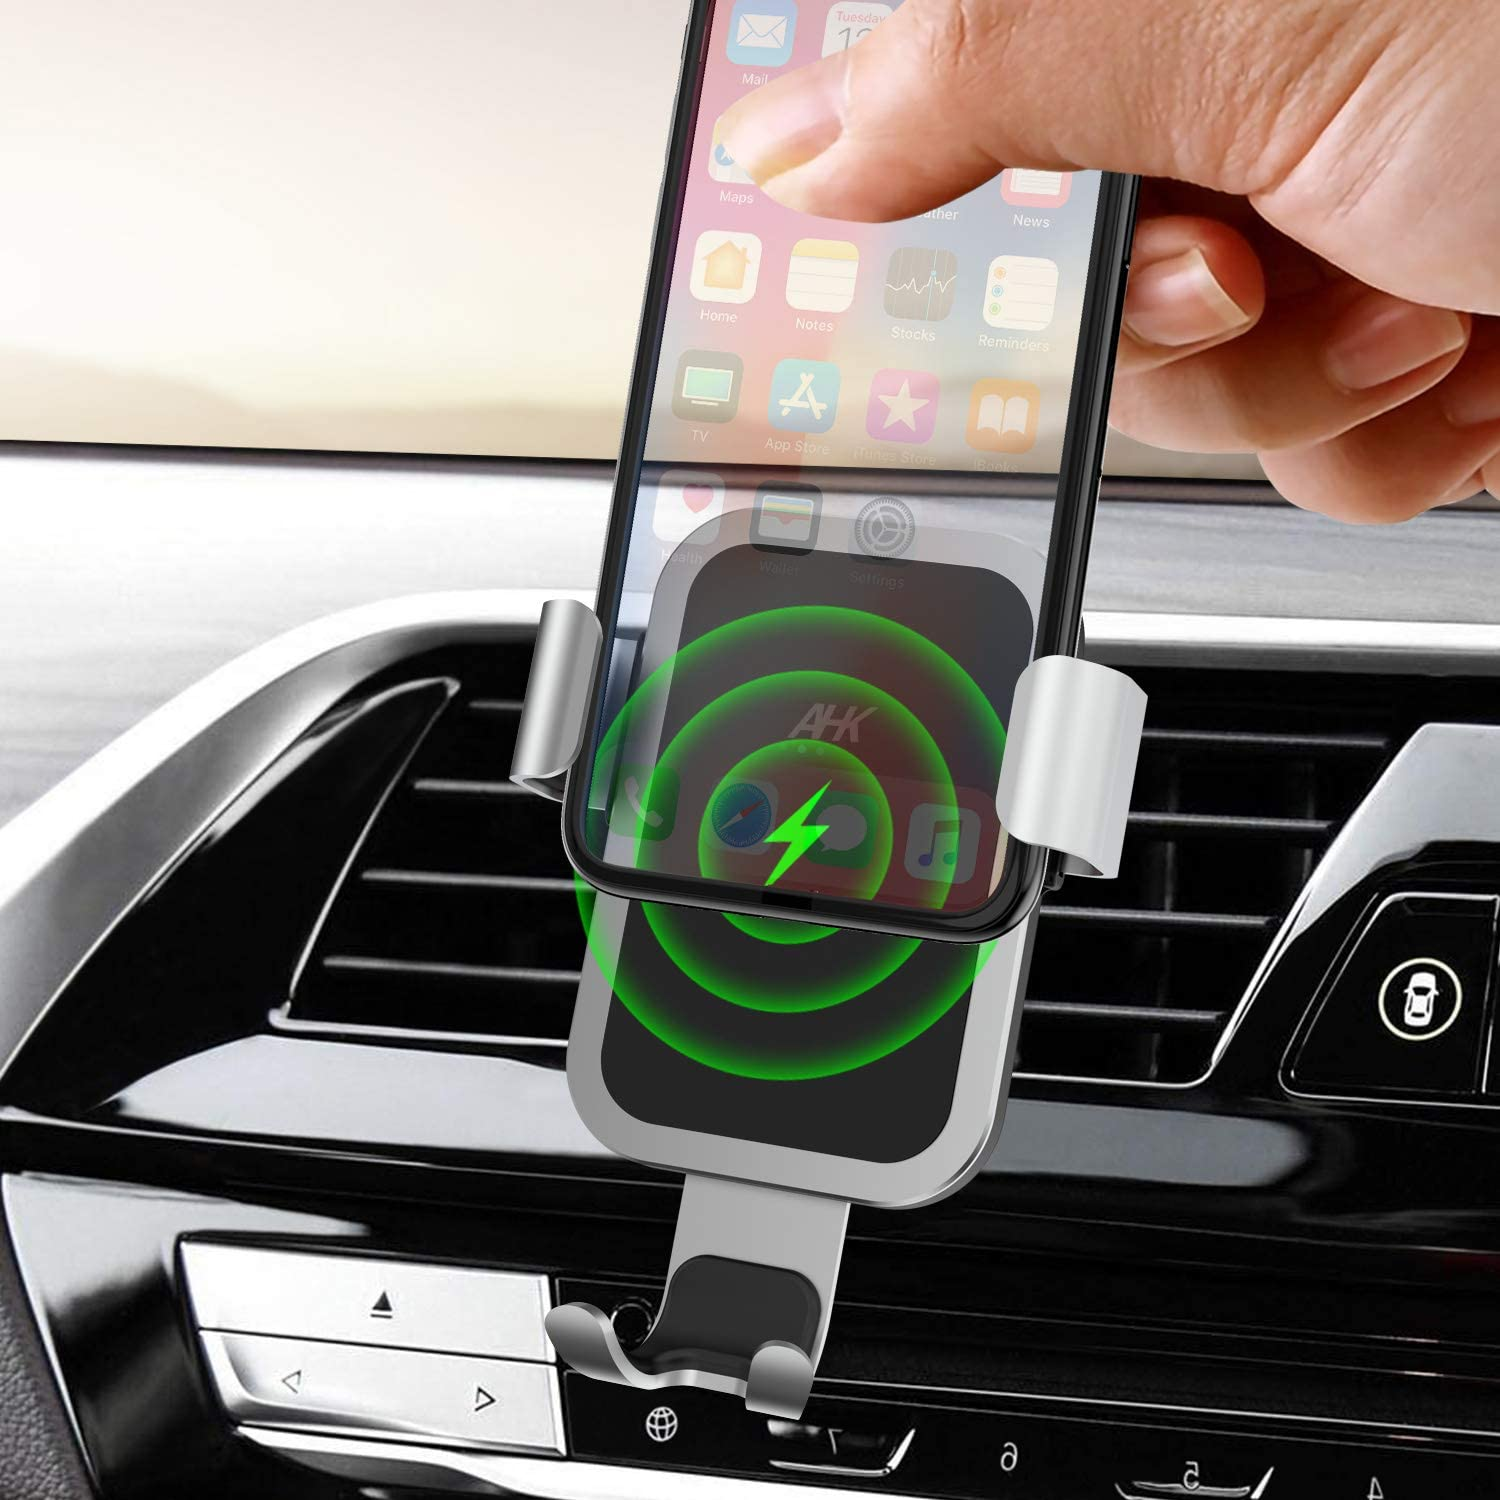 AHK Wireless Charger Car Mount Silver Fast 10W Qi Gravity Windshield Dashboard Air Vent Phone Holder for iPhone Xs//Max//X//XR//8//8 Plus Samsung Galaxy Note 9// S9// S9+// S8//S8+//S7//S6 Edge